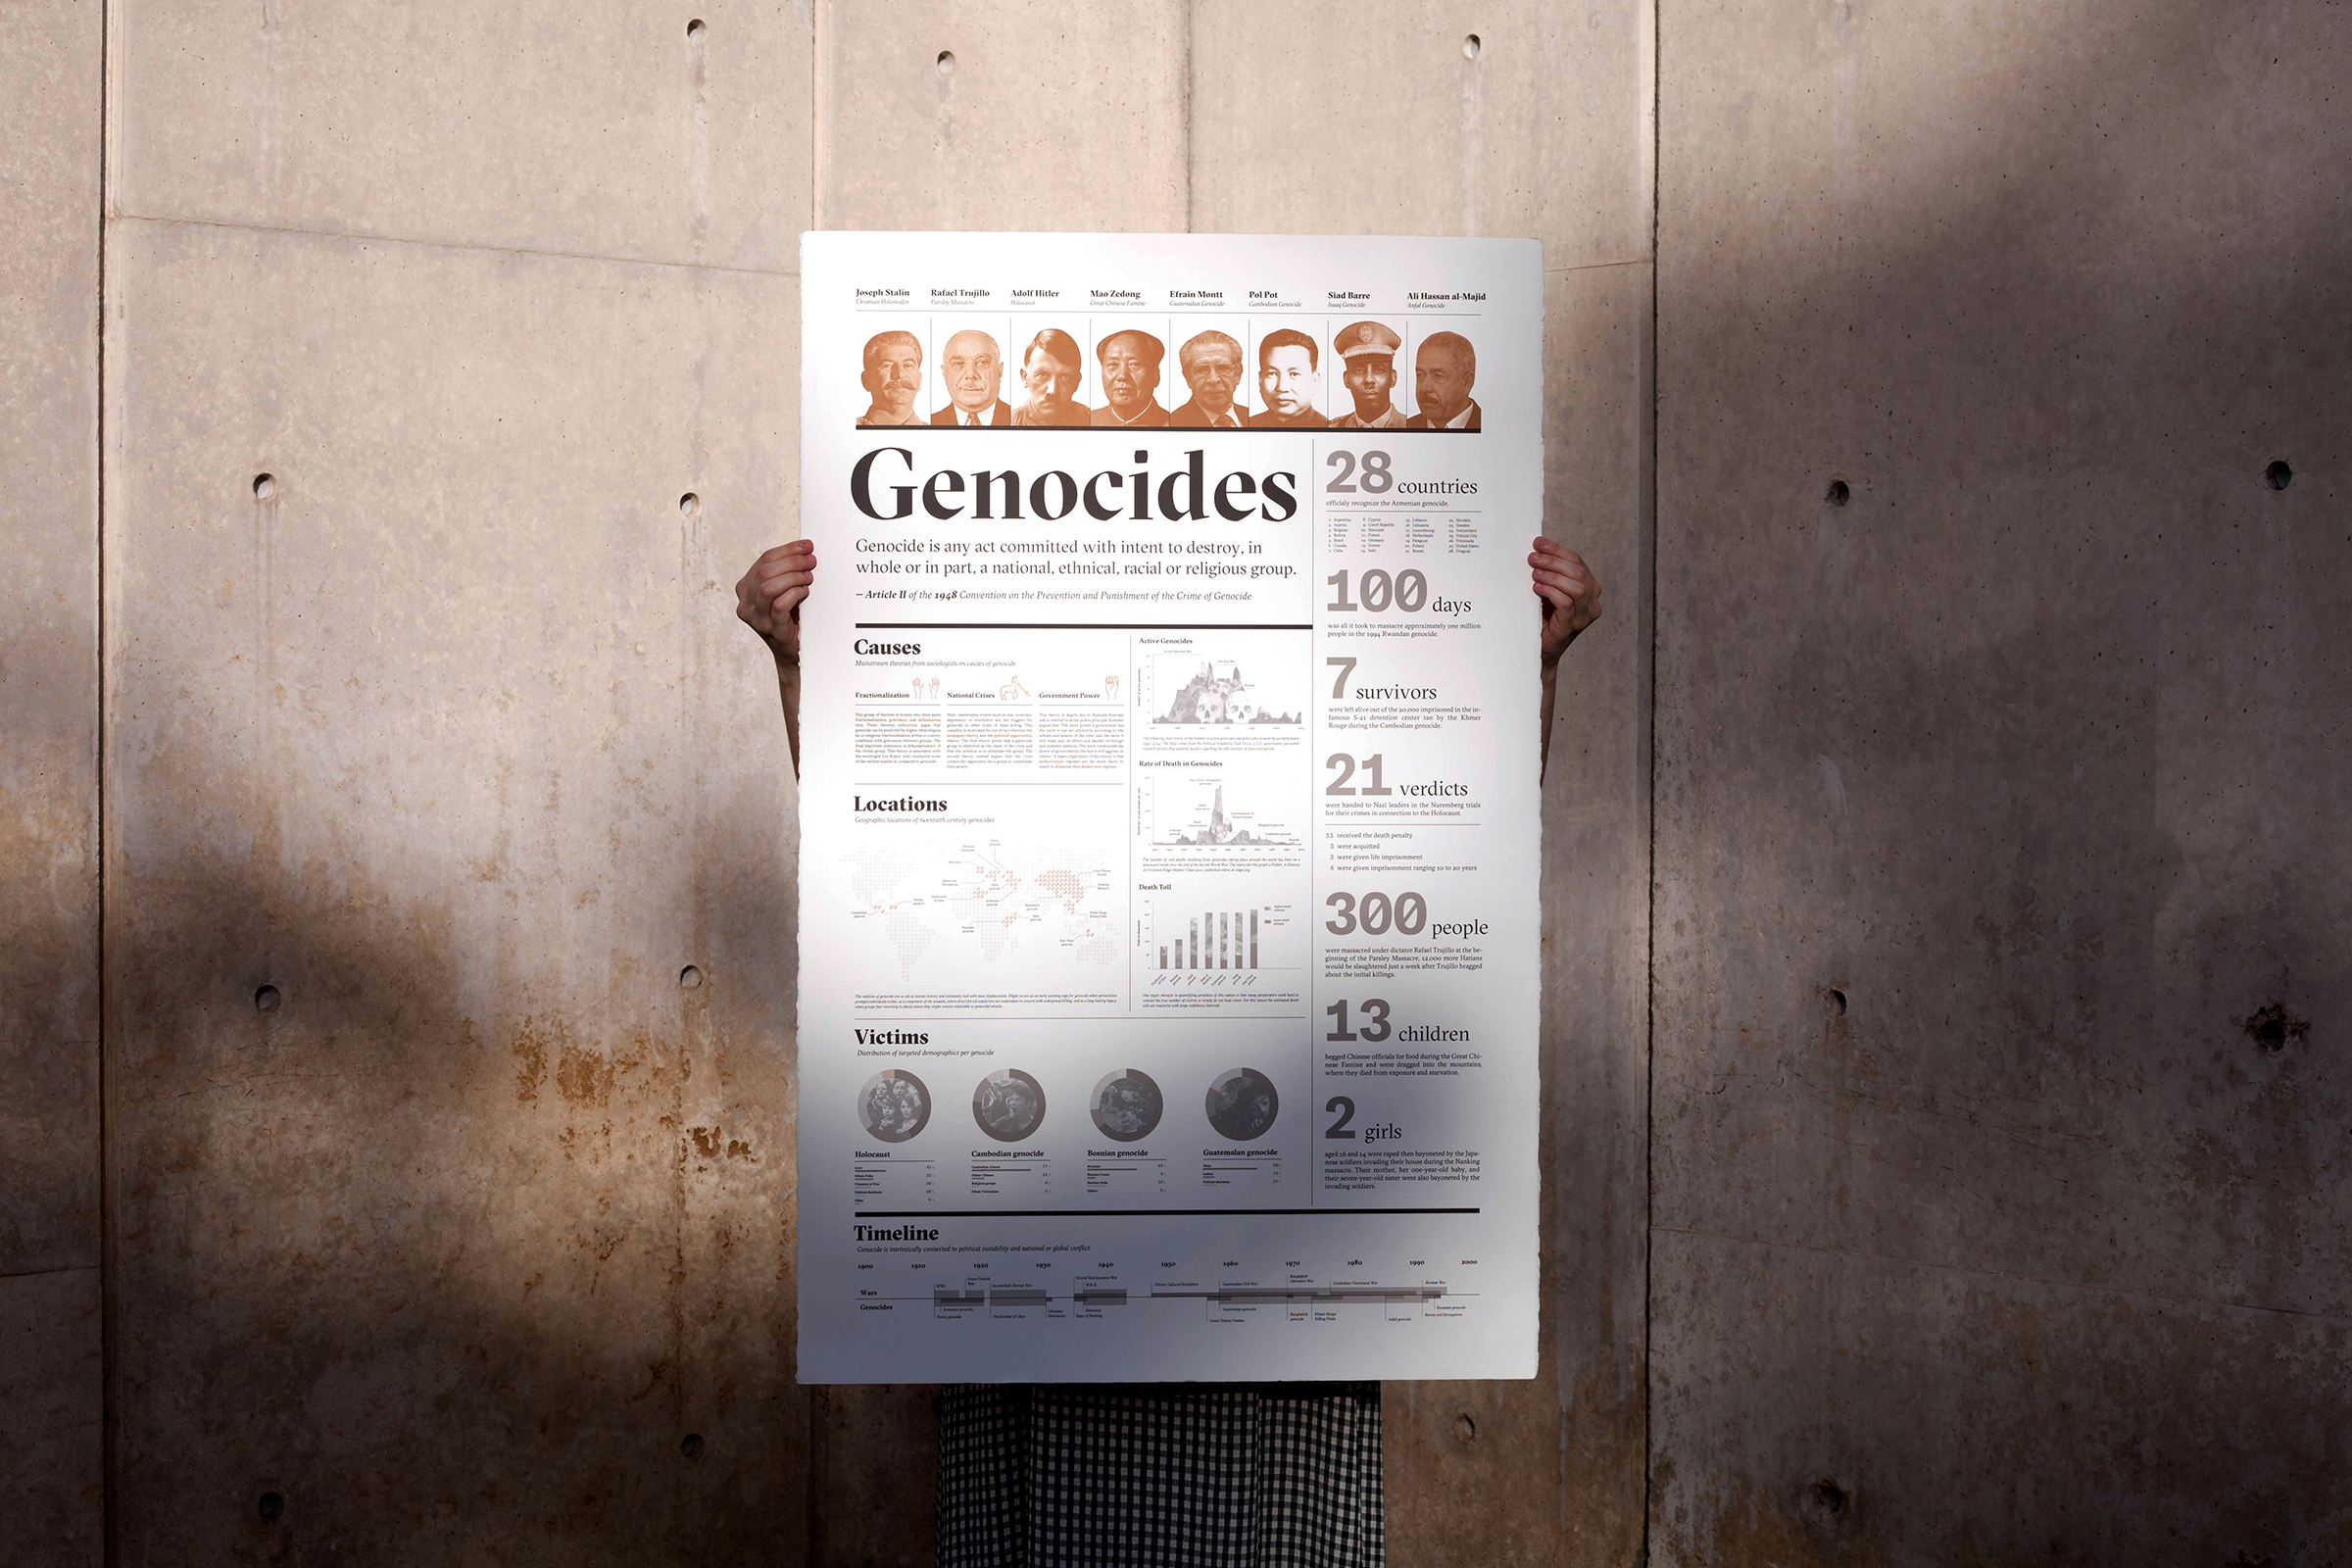 Genocides: An Infographic